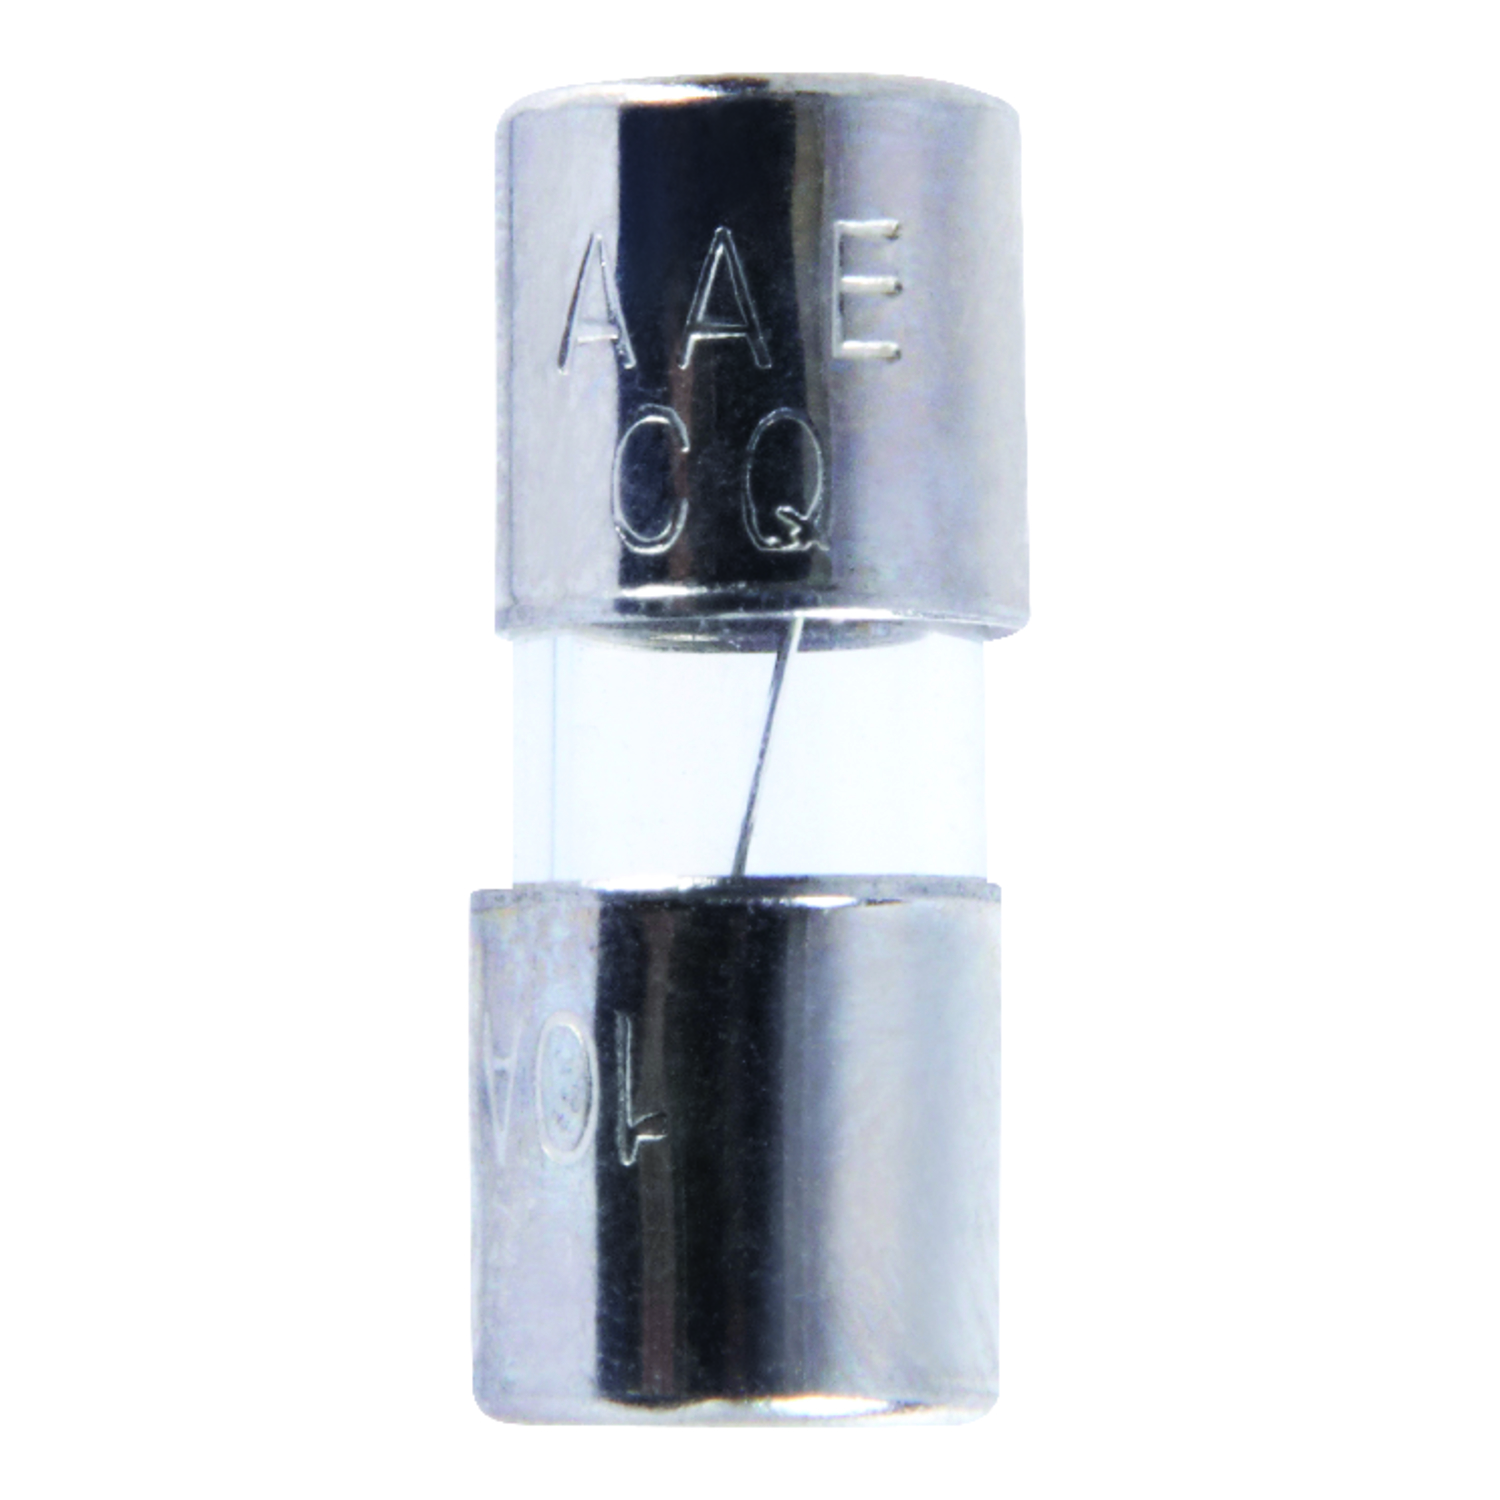 Jandorf  AGA  10 amps 125 volts Glass  Fast Acting Fuse  4 pk